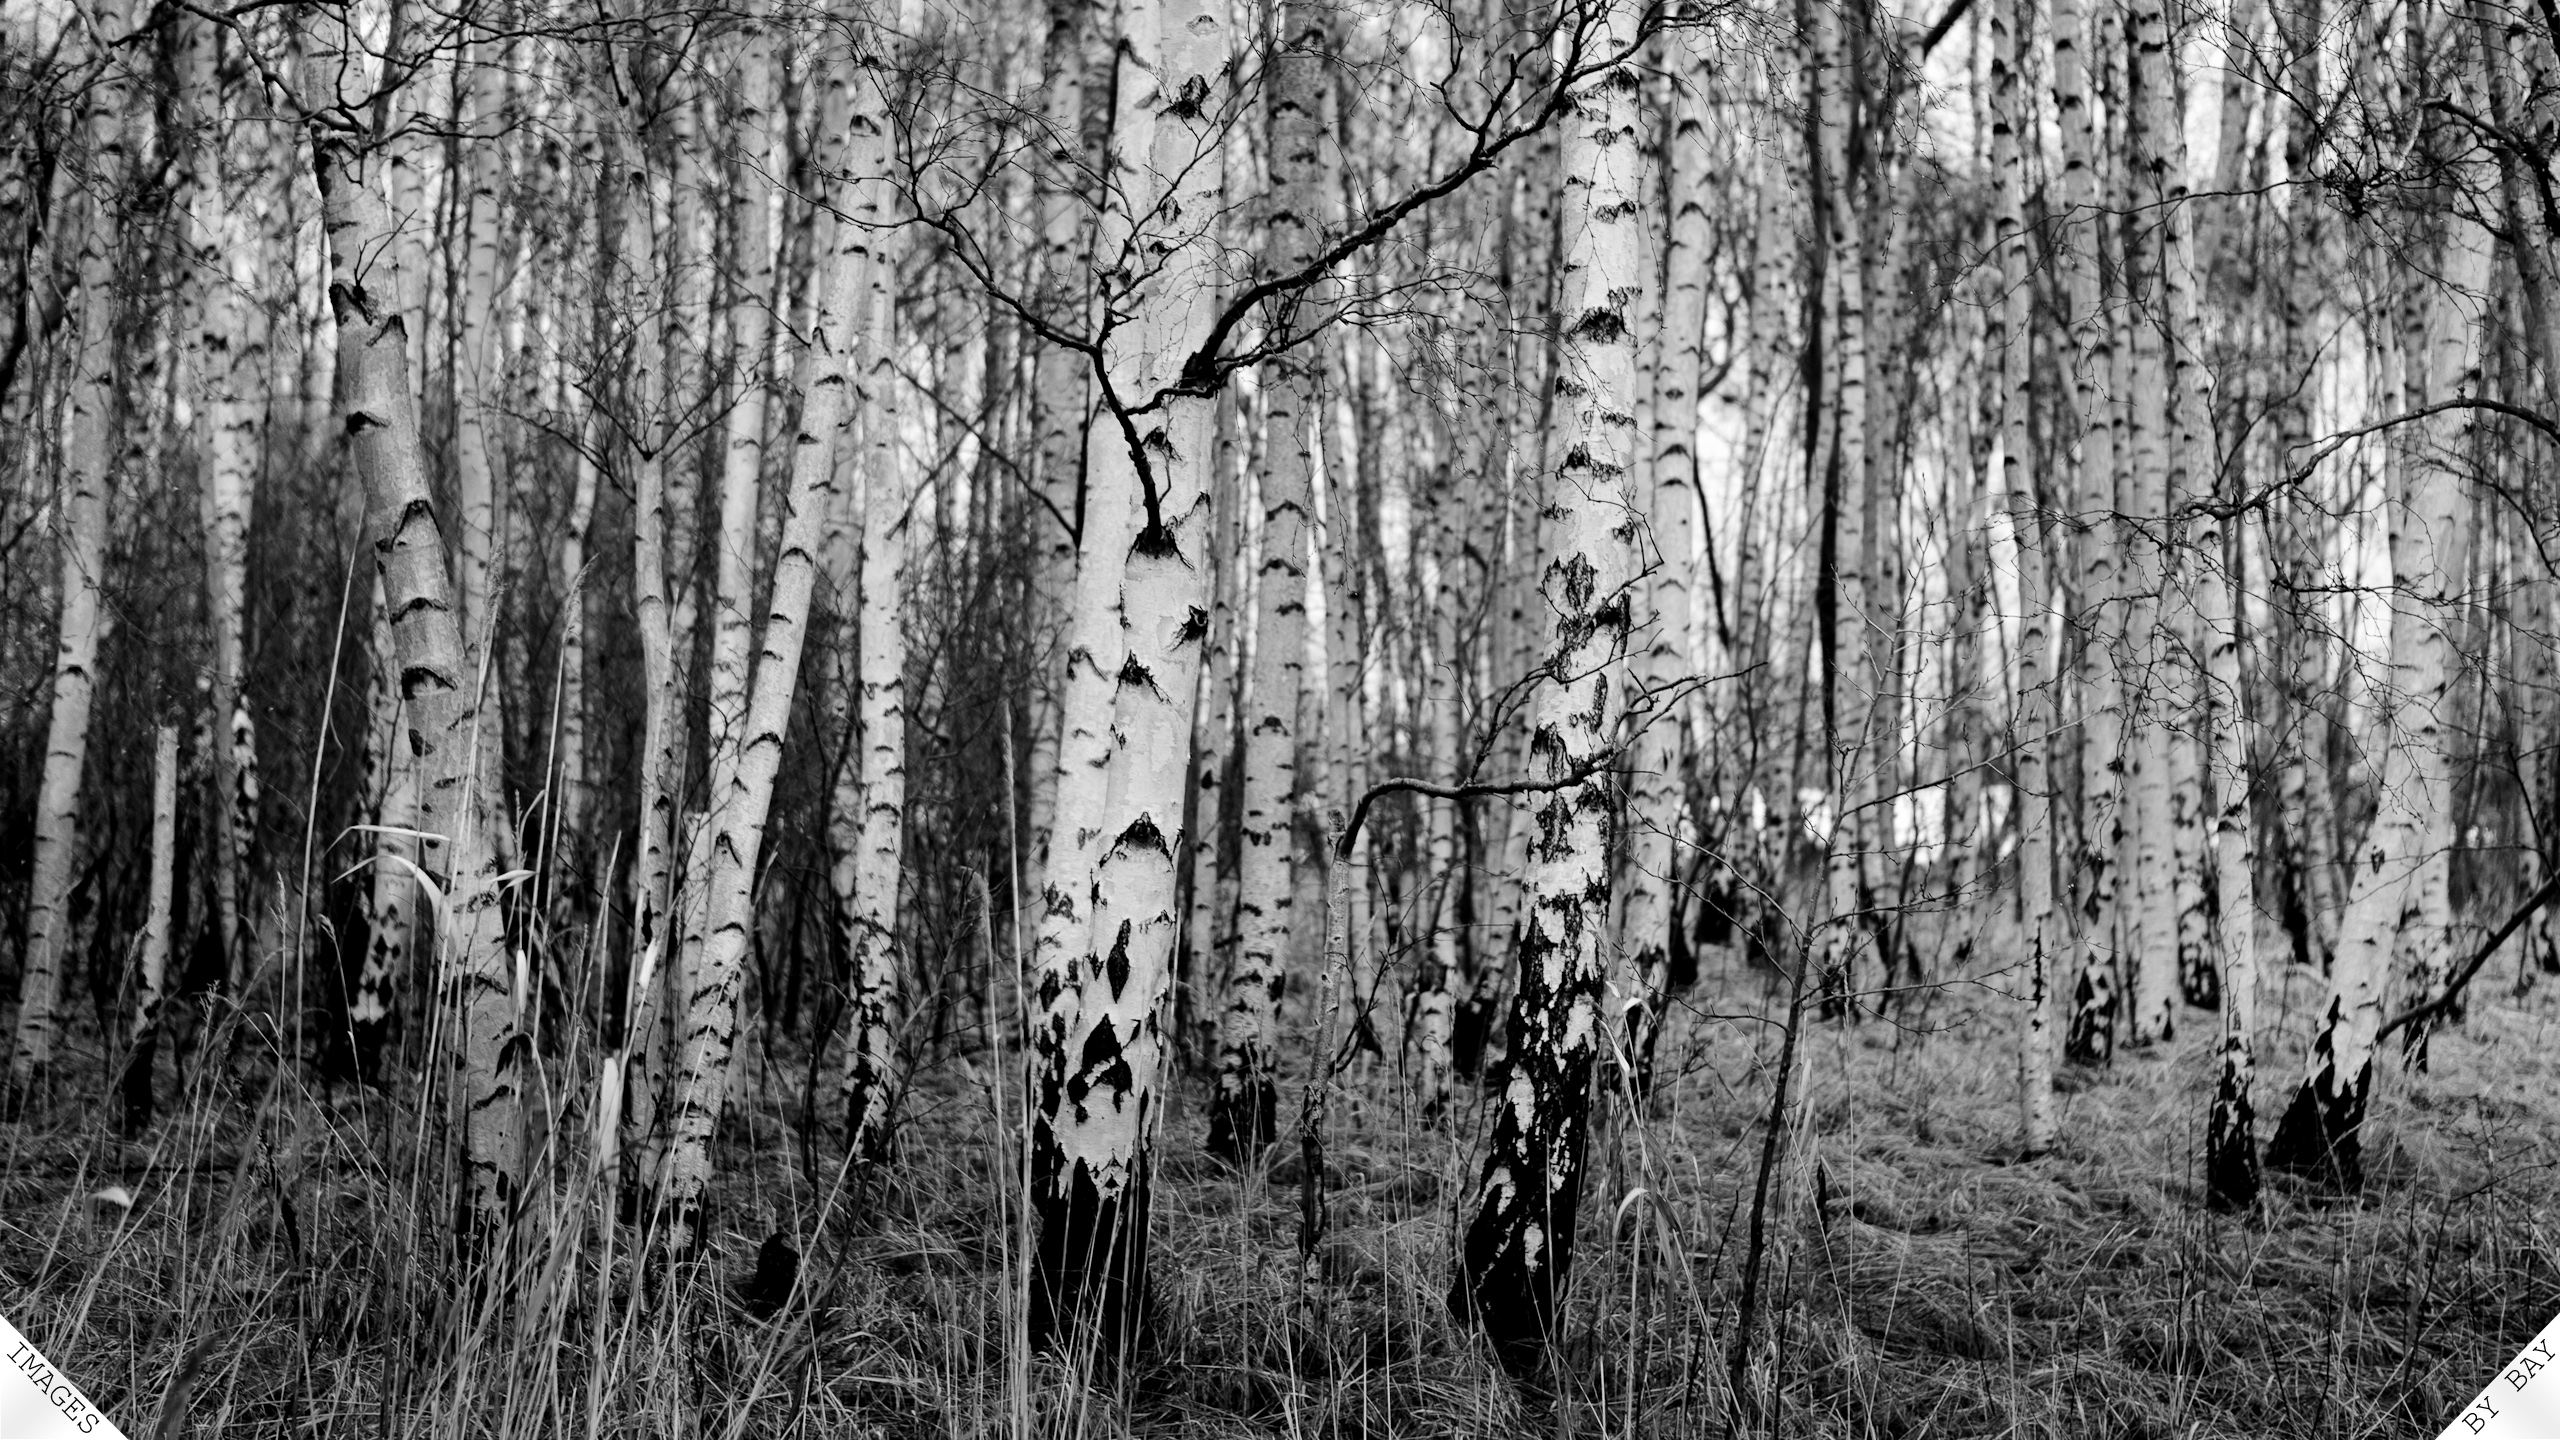 Natural Black White Birch Trees With Resolutions 25601440 Pixel 2560x1440